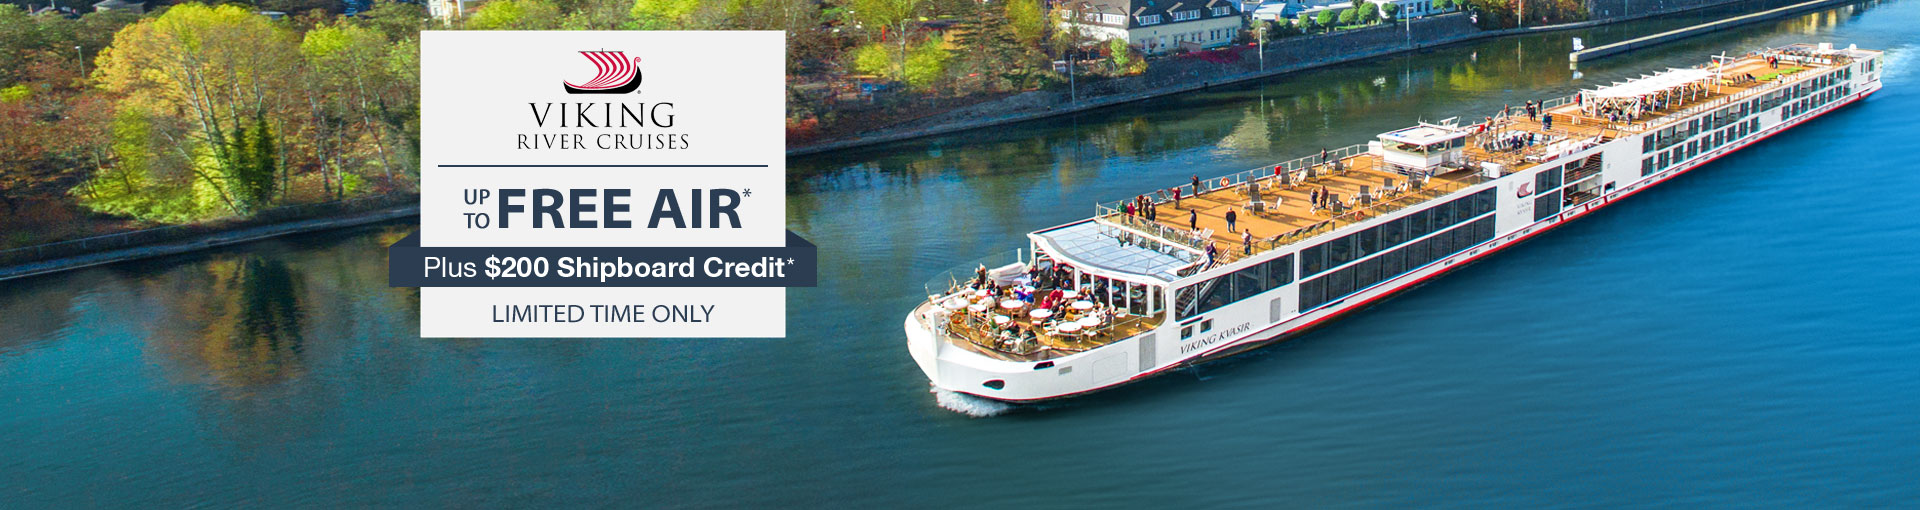 Viking River Cruises: up to Free Airfare and Free Shipboard Credit